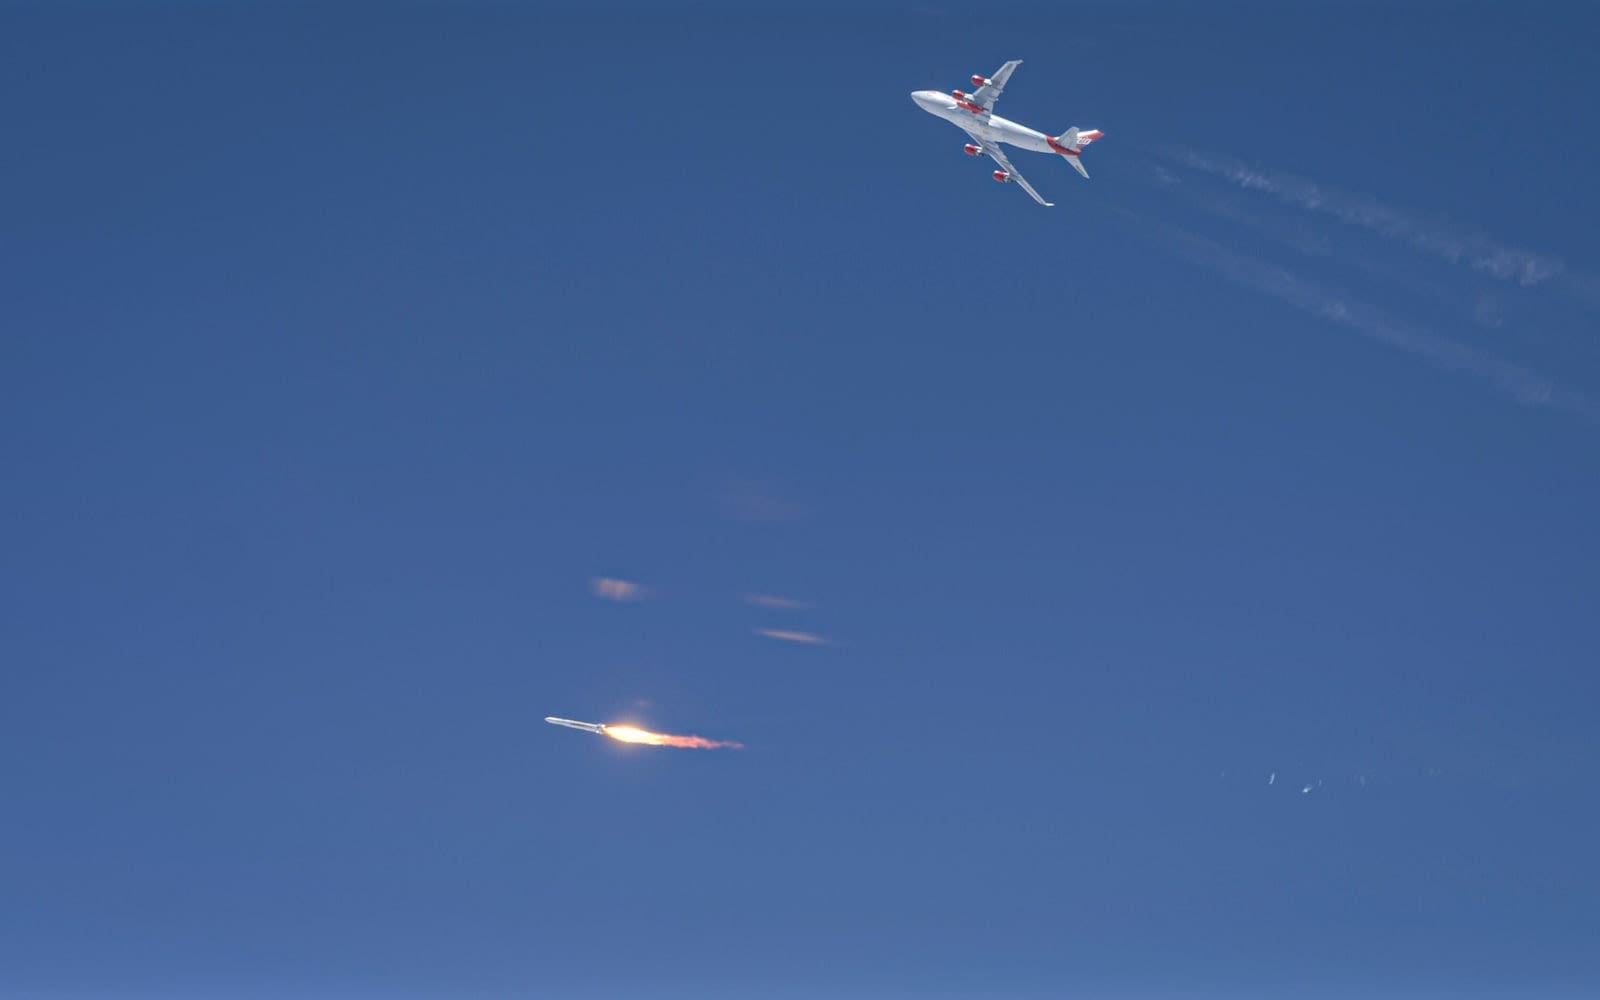 Virgin Orbit LauncherOne ignites, Boeing 747 Cosmic Girl is seen in the background